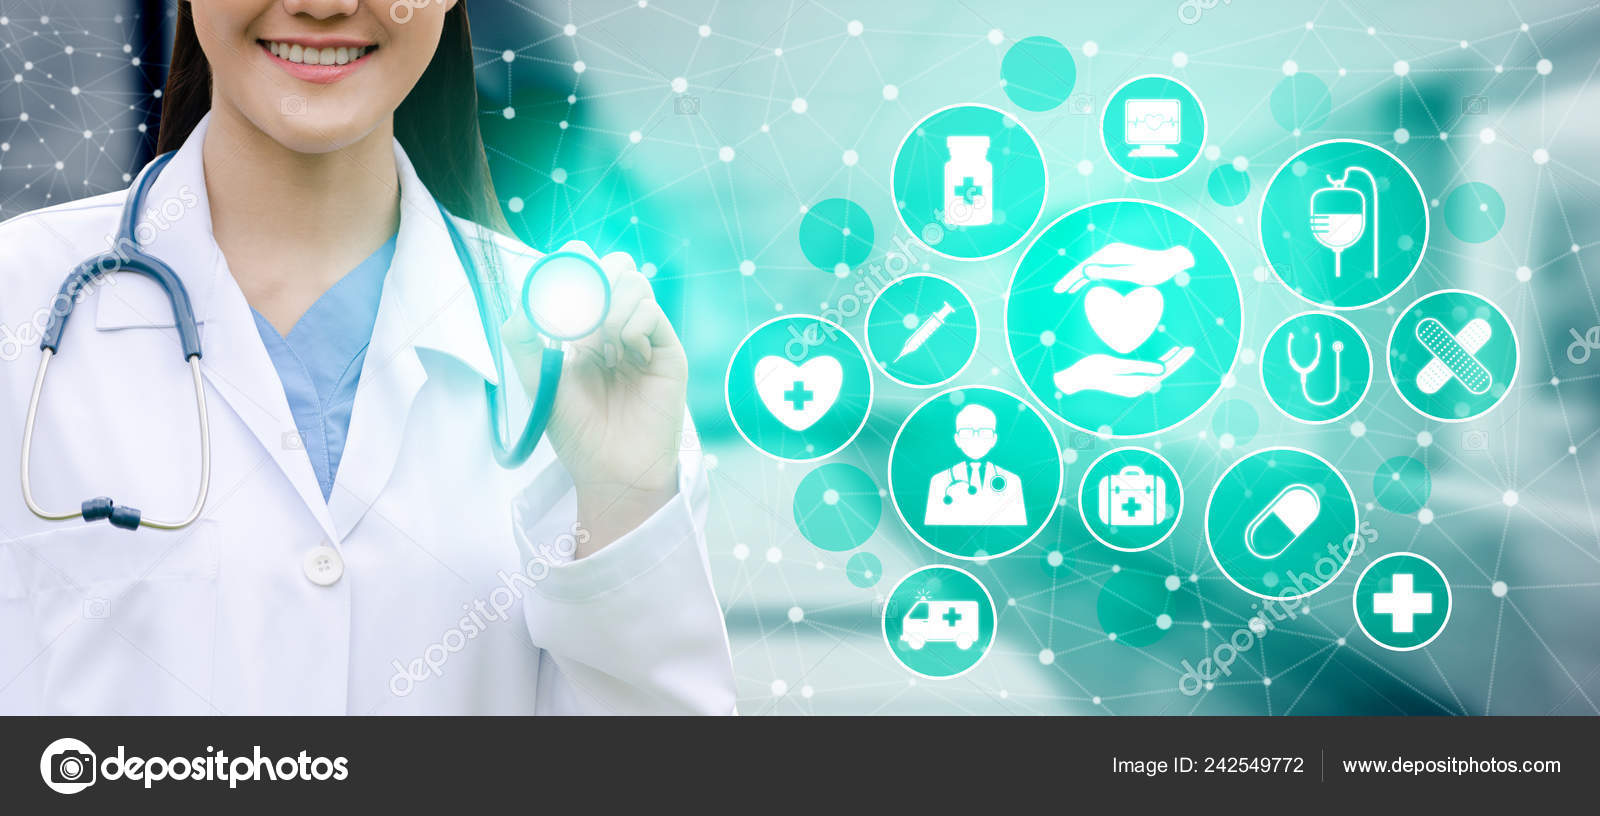 Medical Healthcare Concept Doctor Hospital Digital Medical Icons Graphic Banner Stock Photo C Biancoblue 242549772